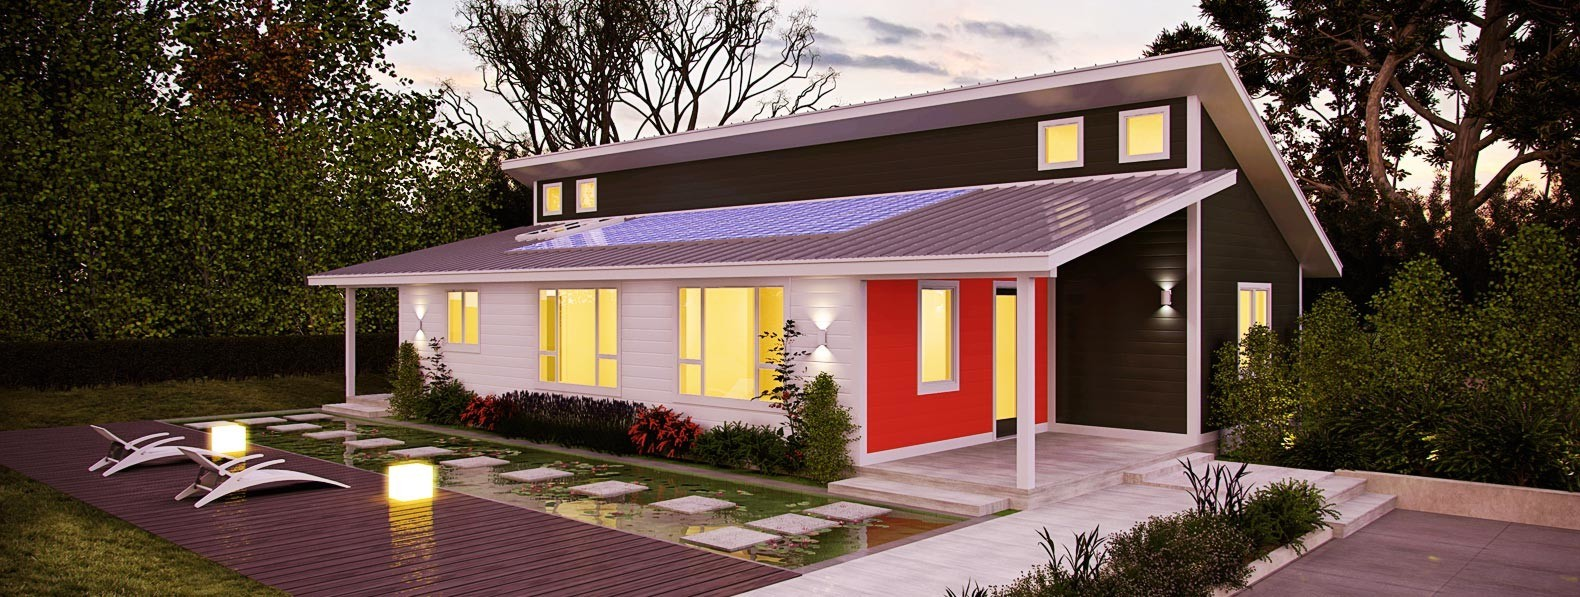 Deltec homes ridgeline netzero home 1580 597 global for Netzero home plans